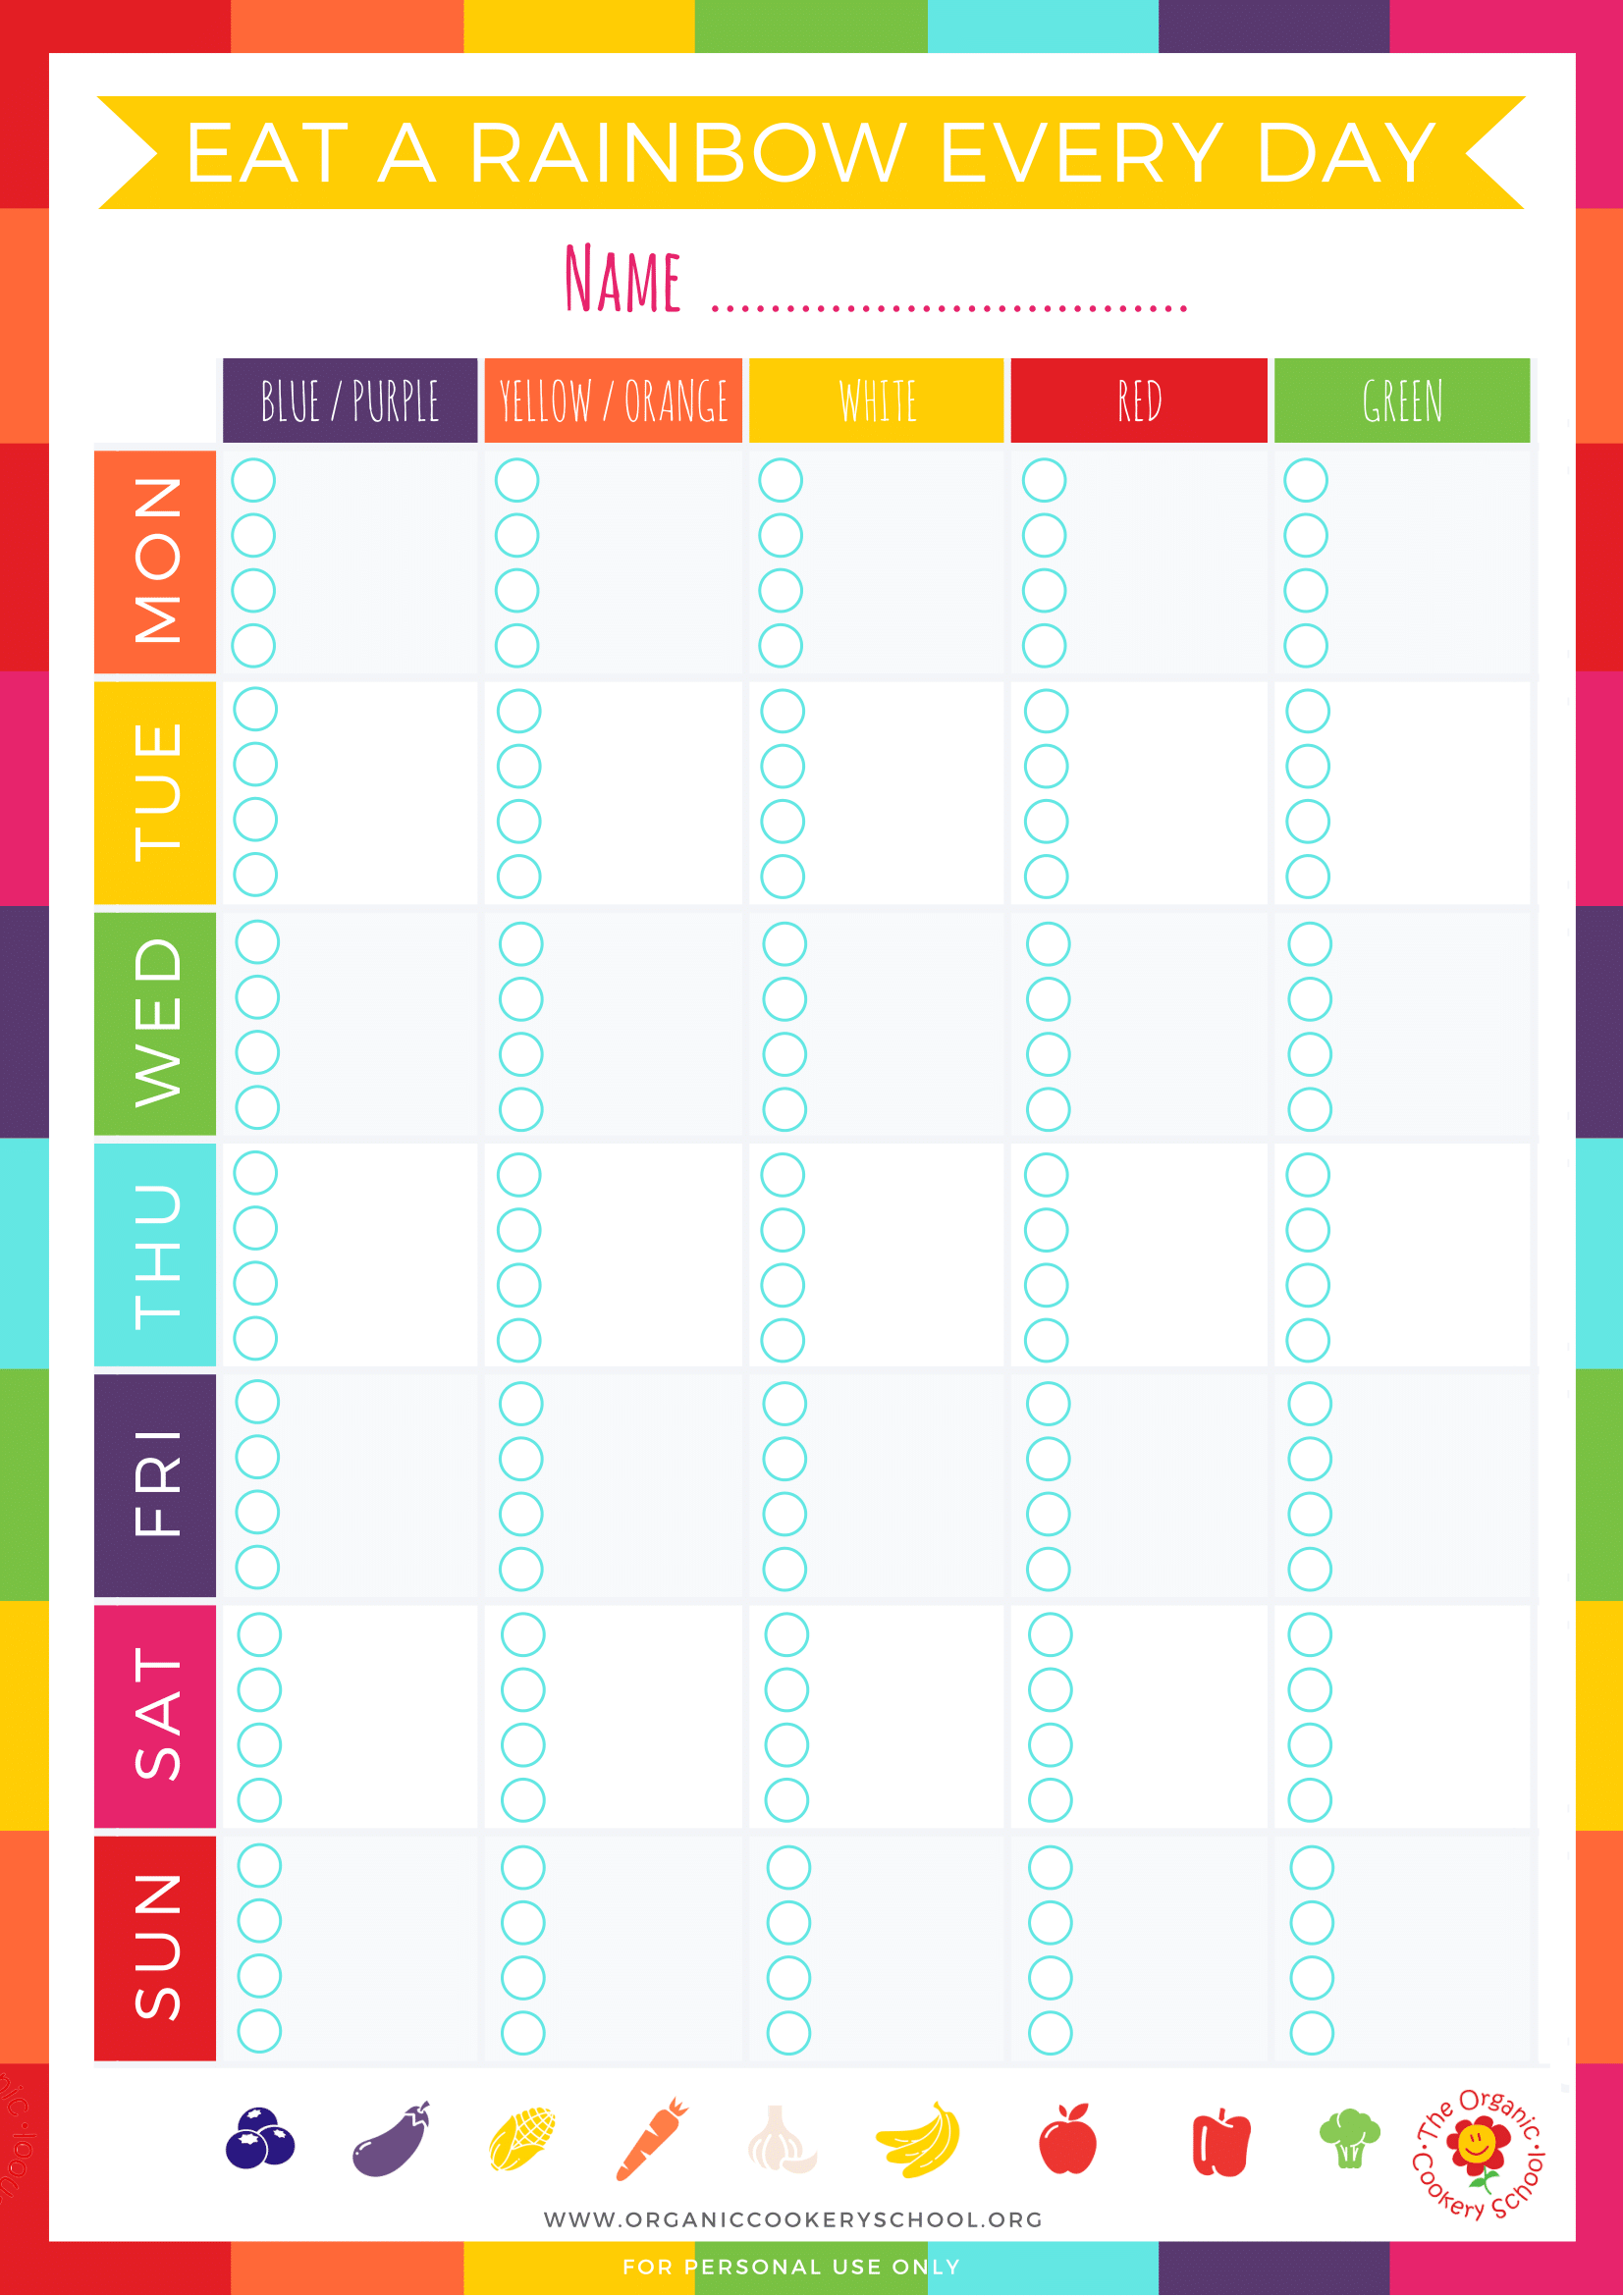 EAT A RAINBOW EVERYDAY TRACKER-1.png